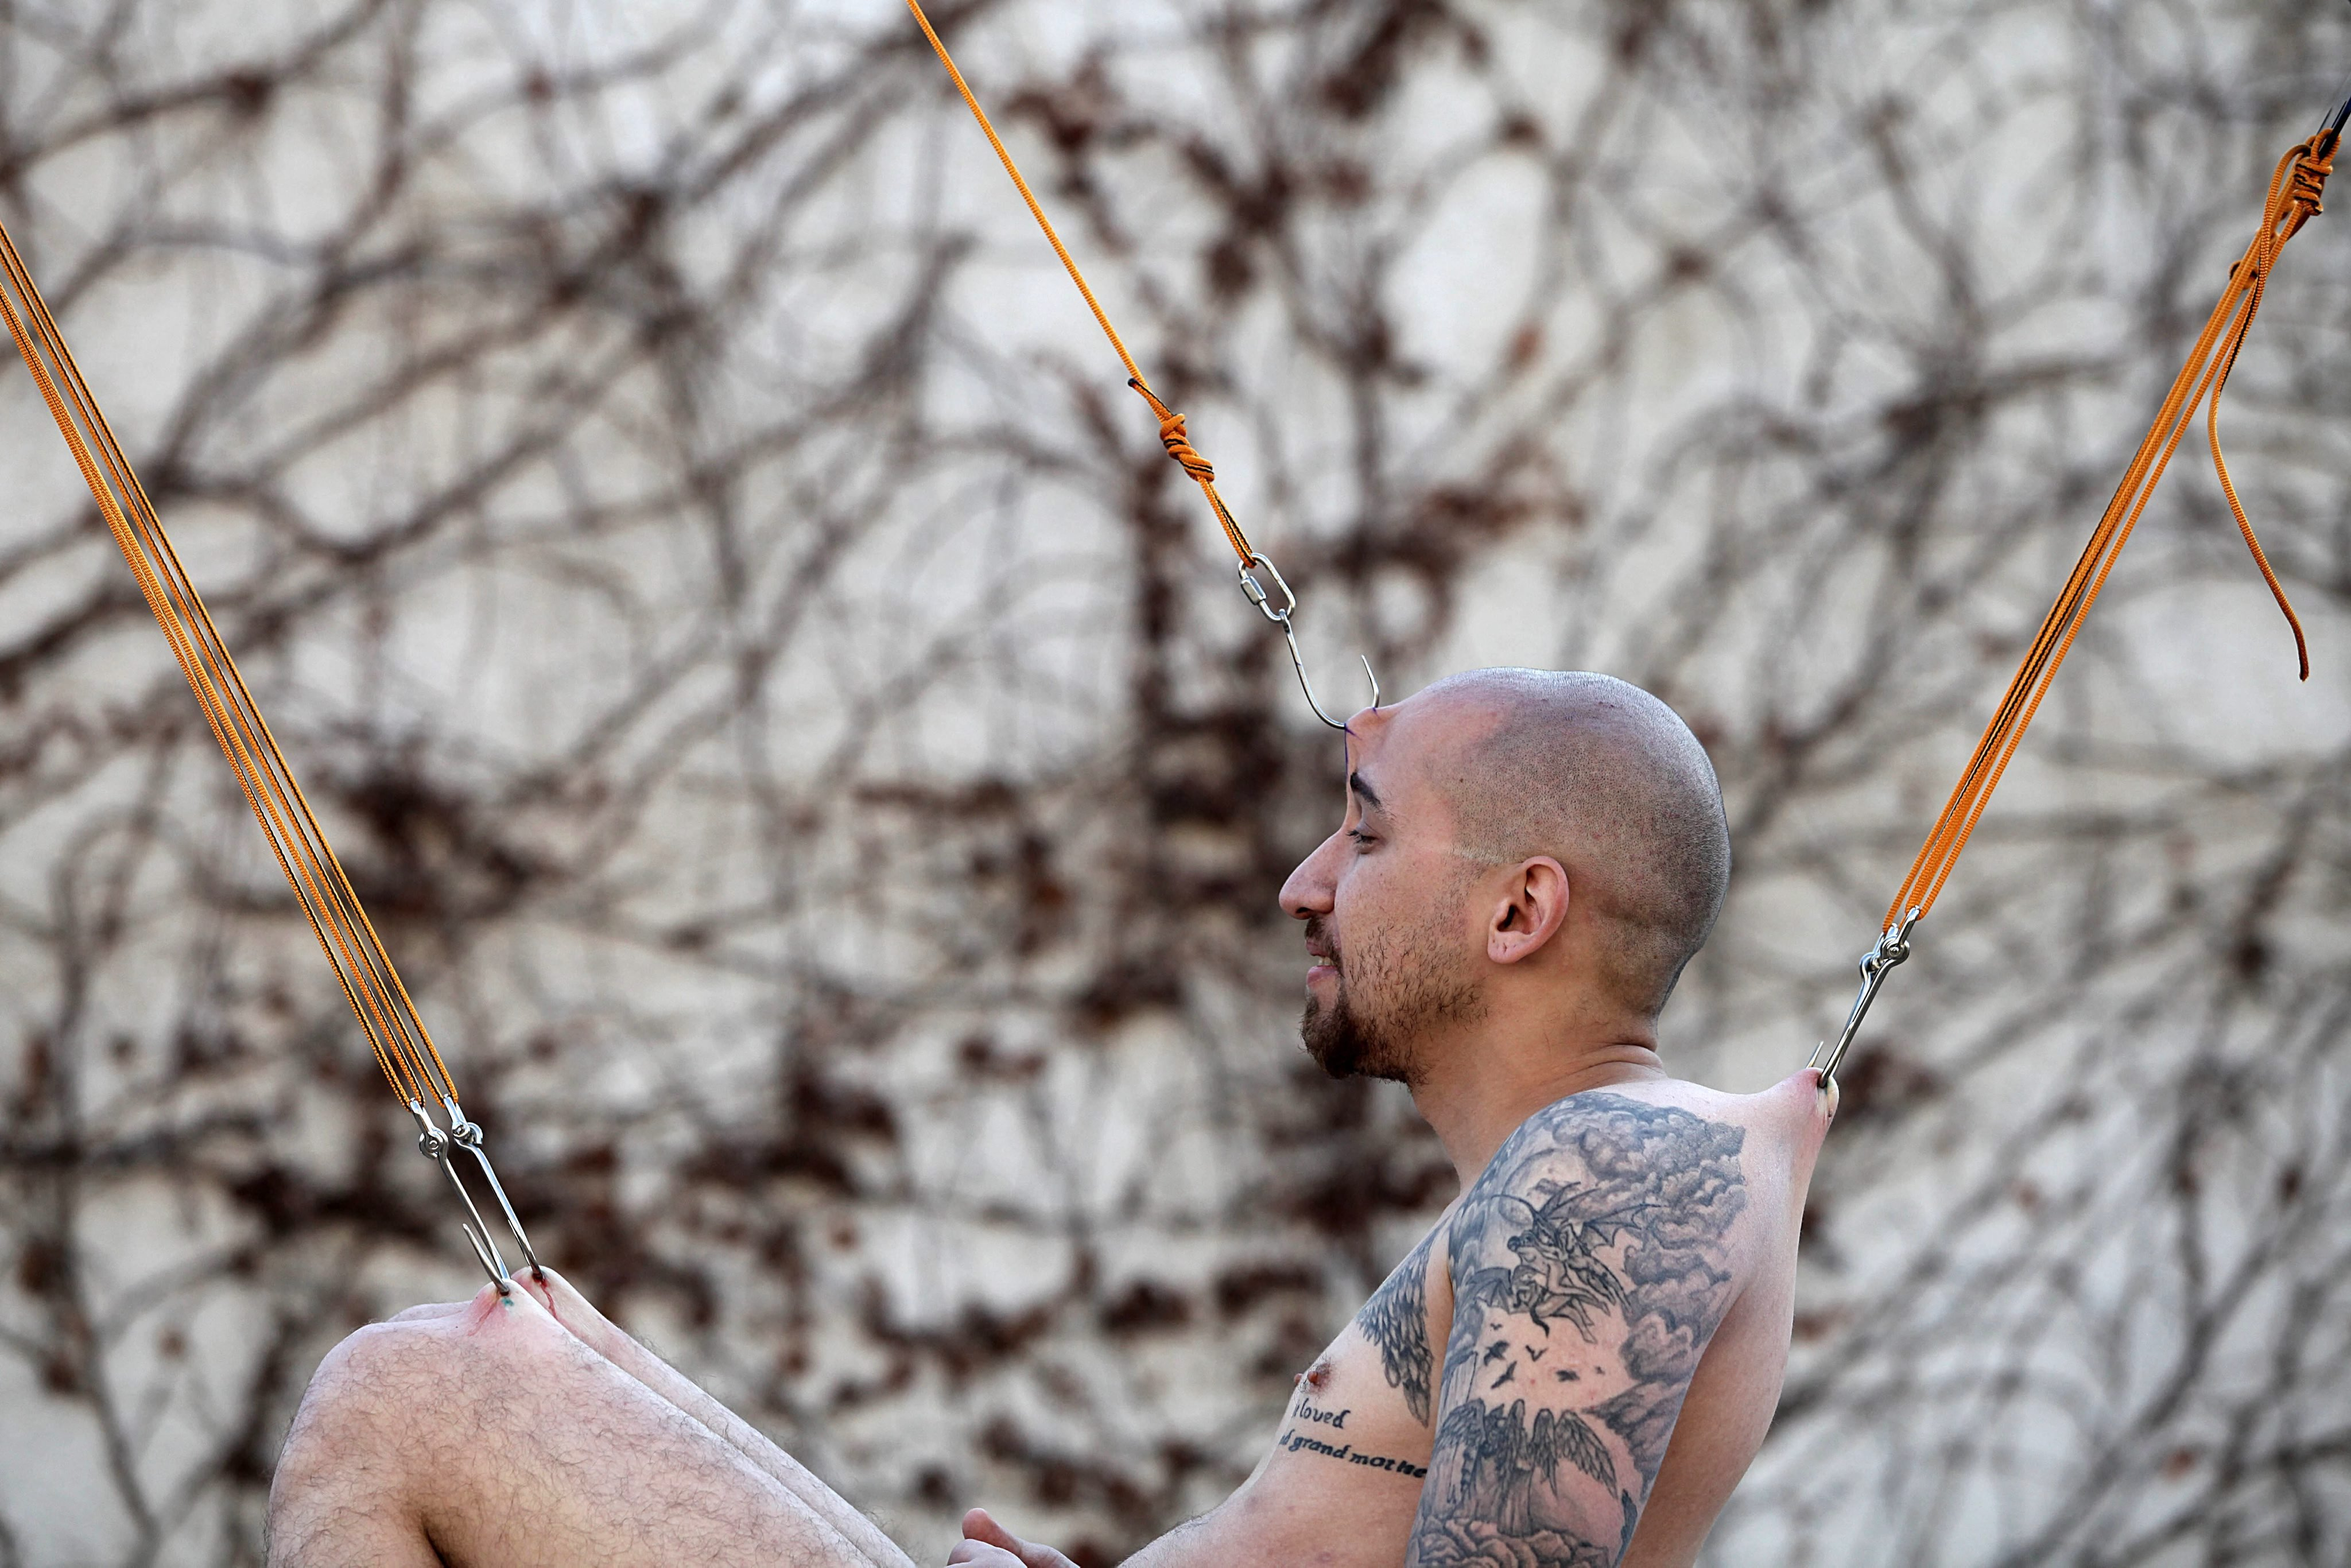 An Israeli hanging on hooks performs the Suspension (body modification) during the annual Israel Tattoo Convention in Tel Aviv, Israel, Feb. 8, 2014. The event took place for the second time in Israel featuring the best tattoo artists of the country.